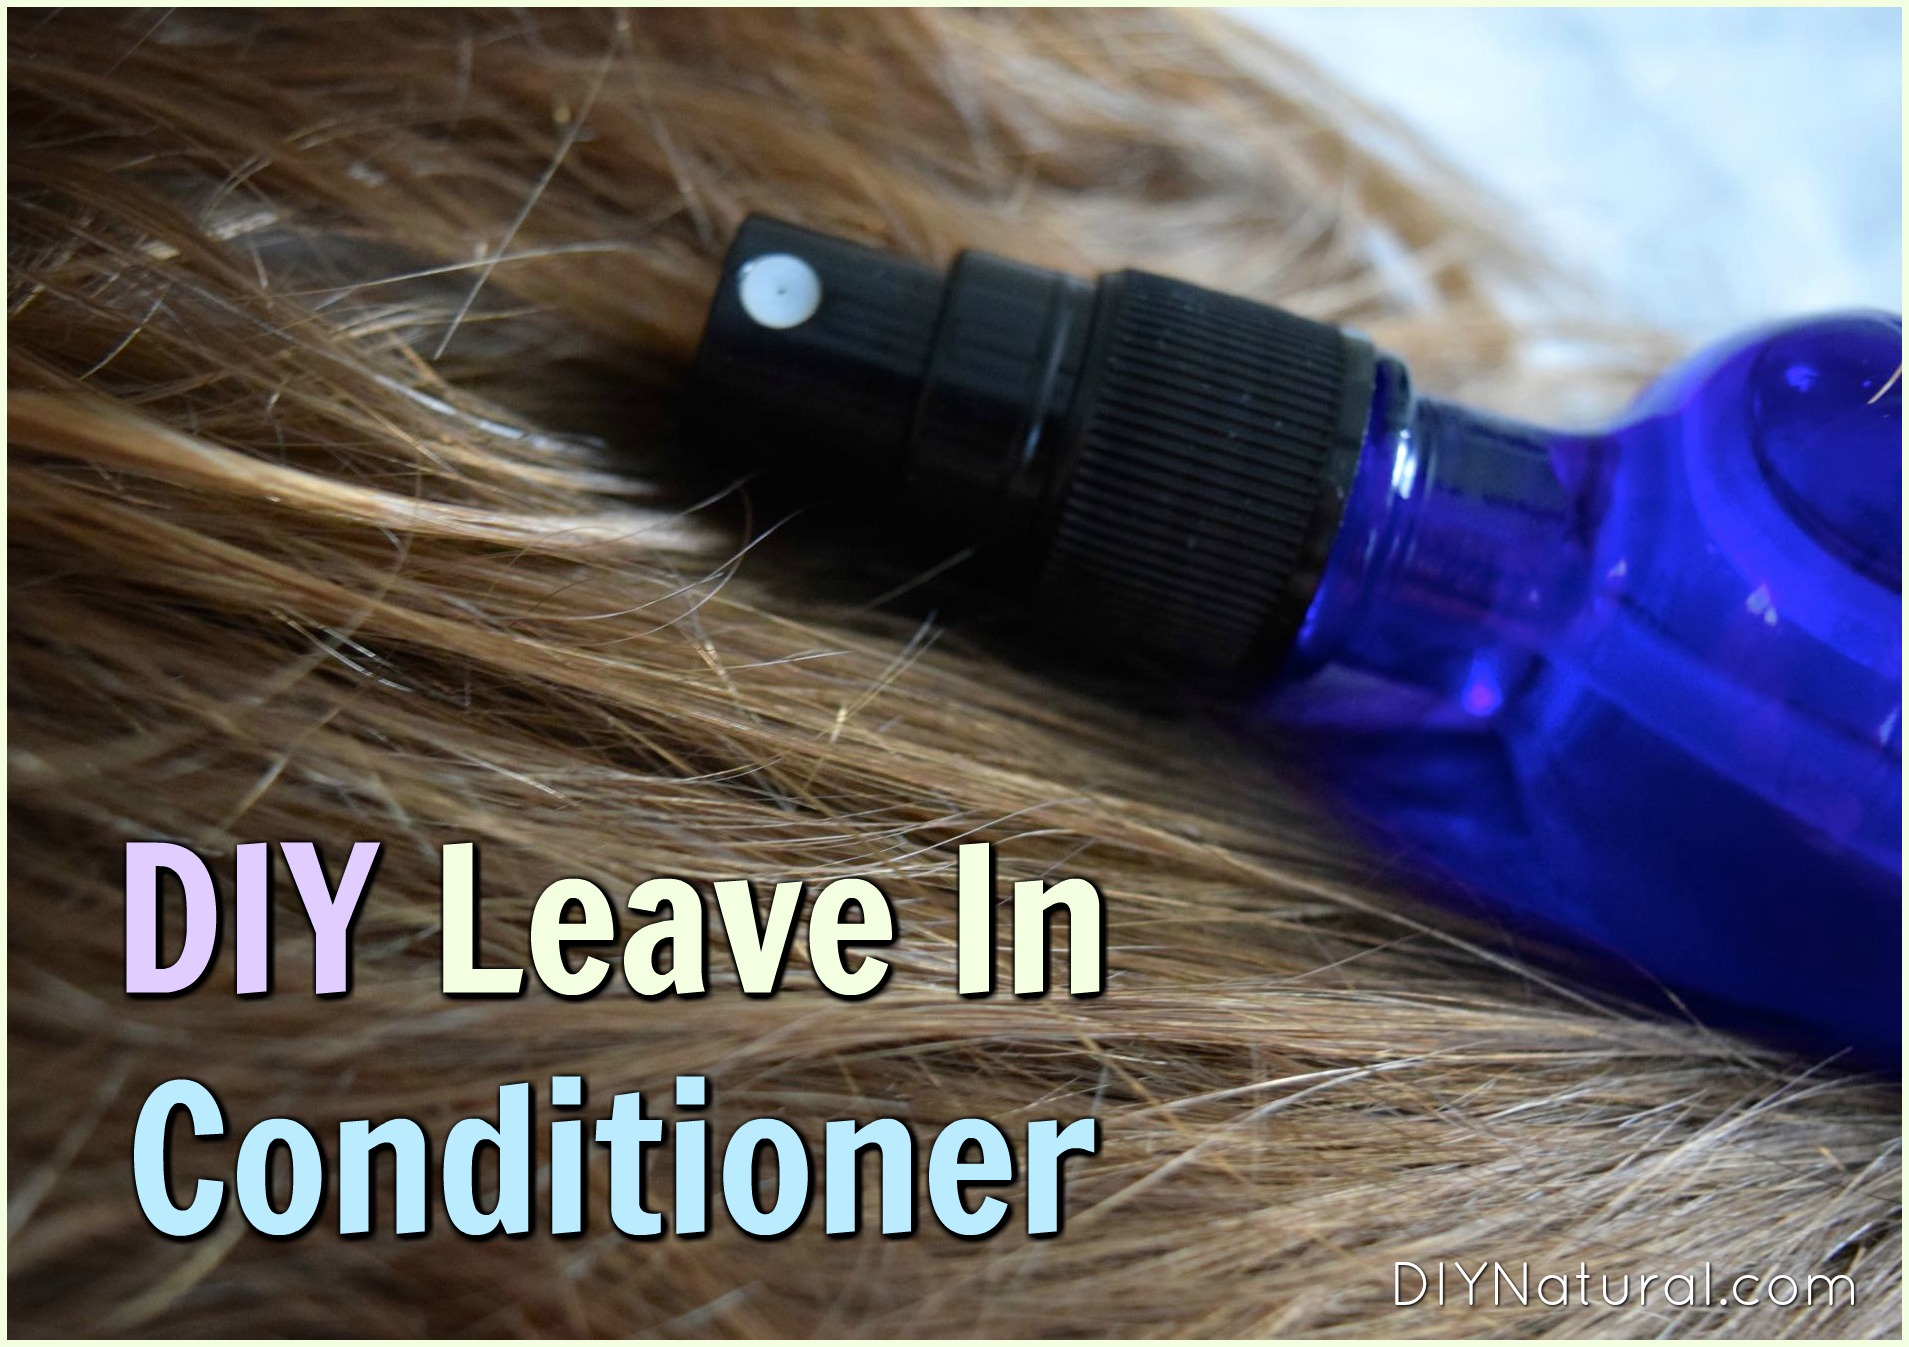 DIY Leave In Conditioner: A Very Simple